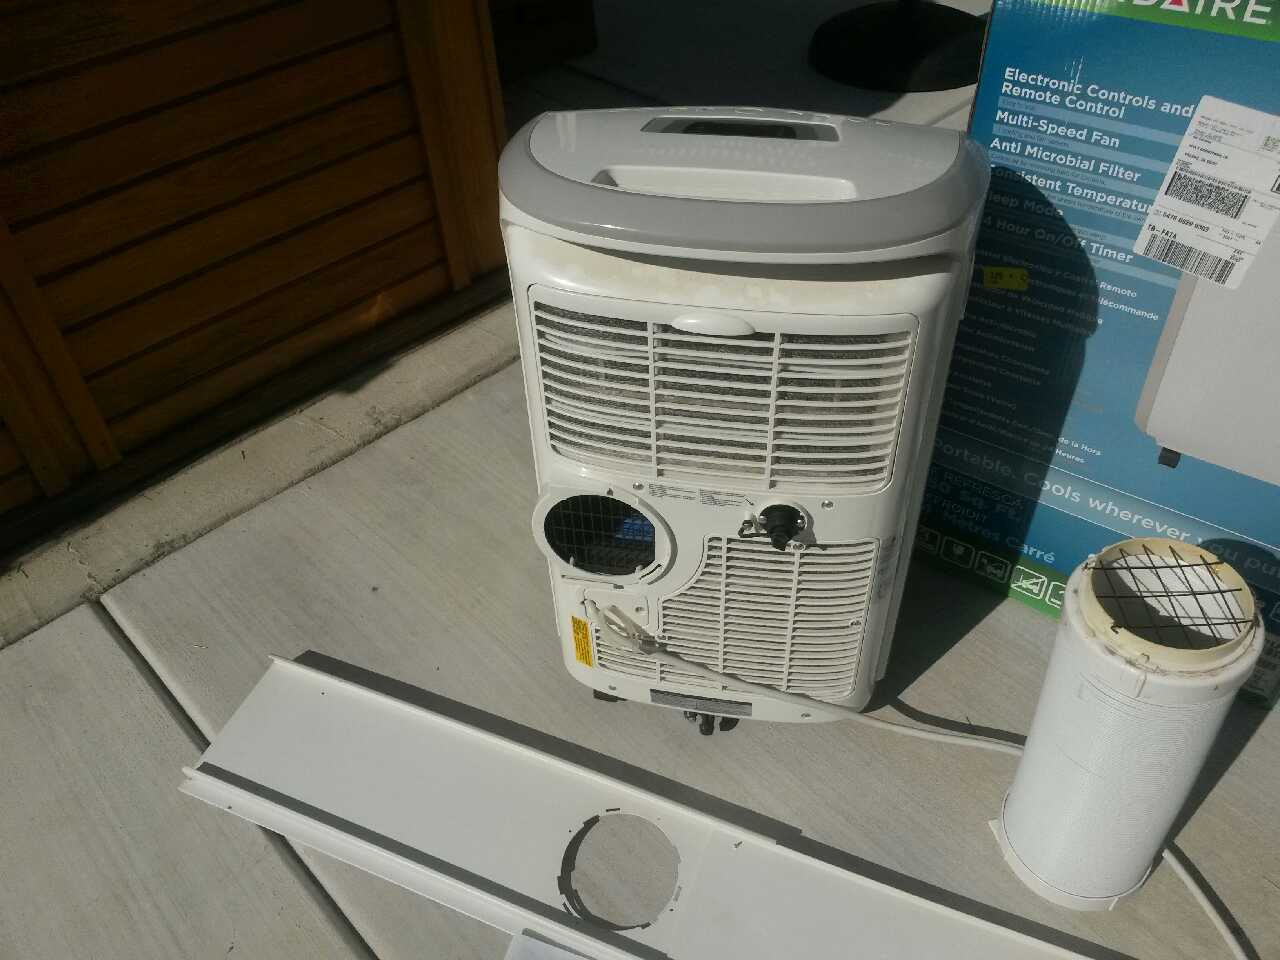 5000 btu condition it works for cooling a small room with a window #104E67